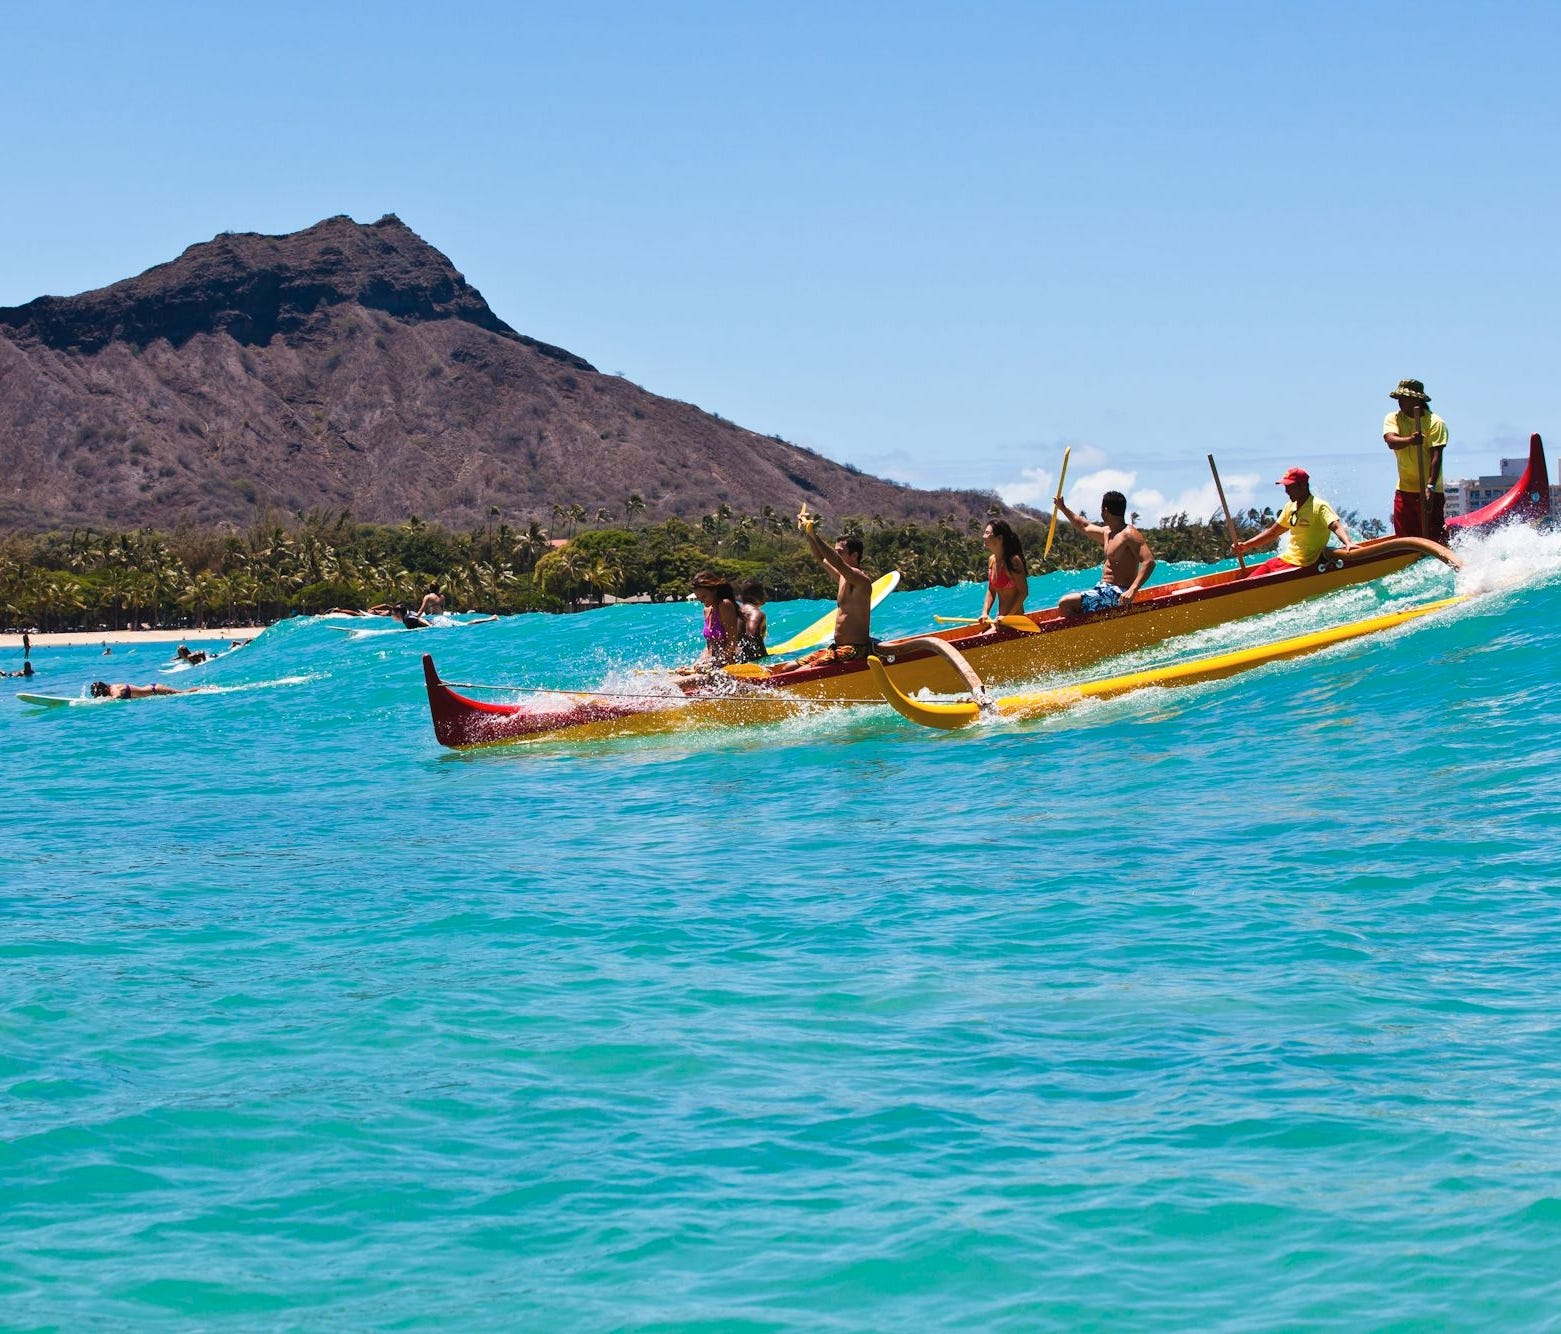 Outrigger canoeing is a great way to ride the waves of Waikiki.